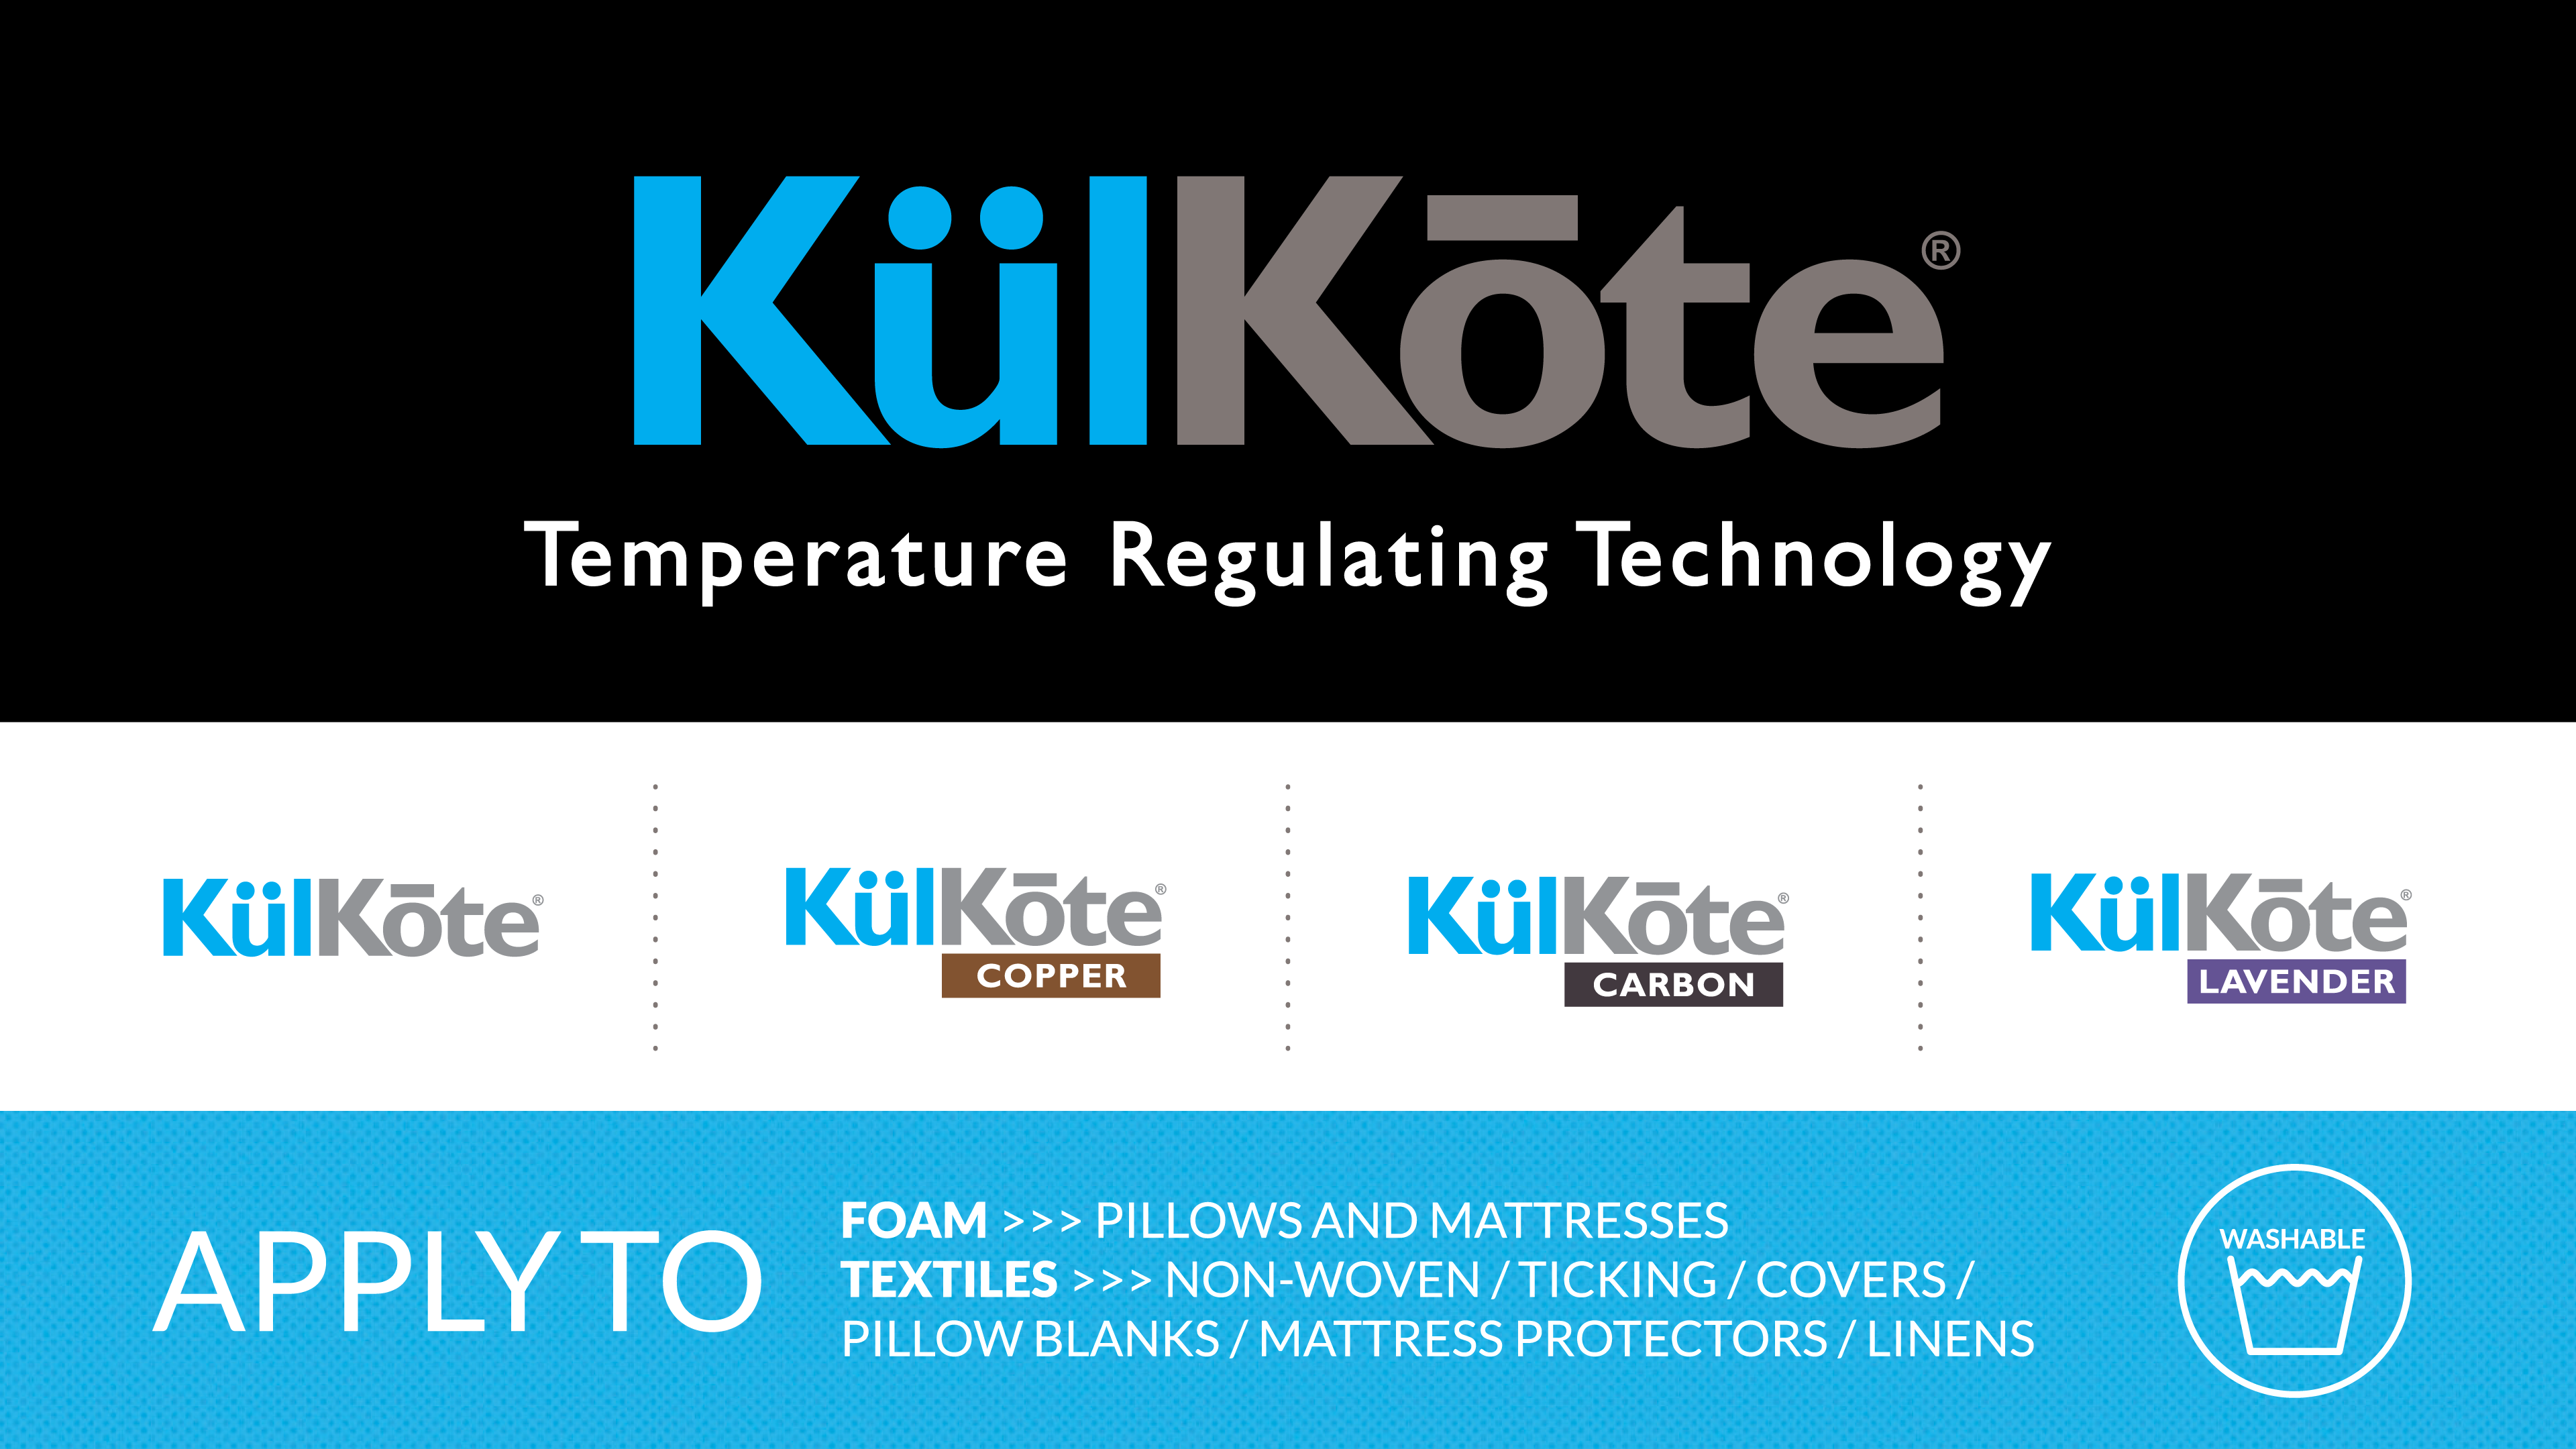 KulKote Temperature Regulating Technology Products